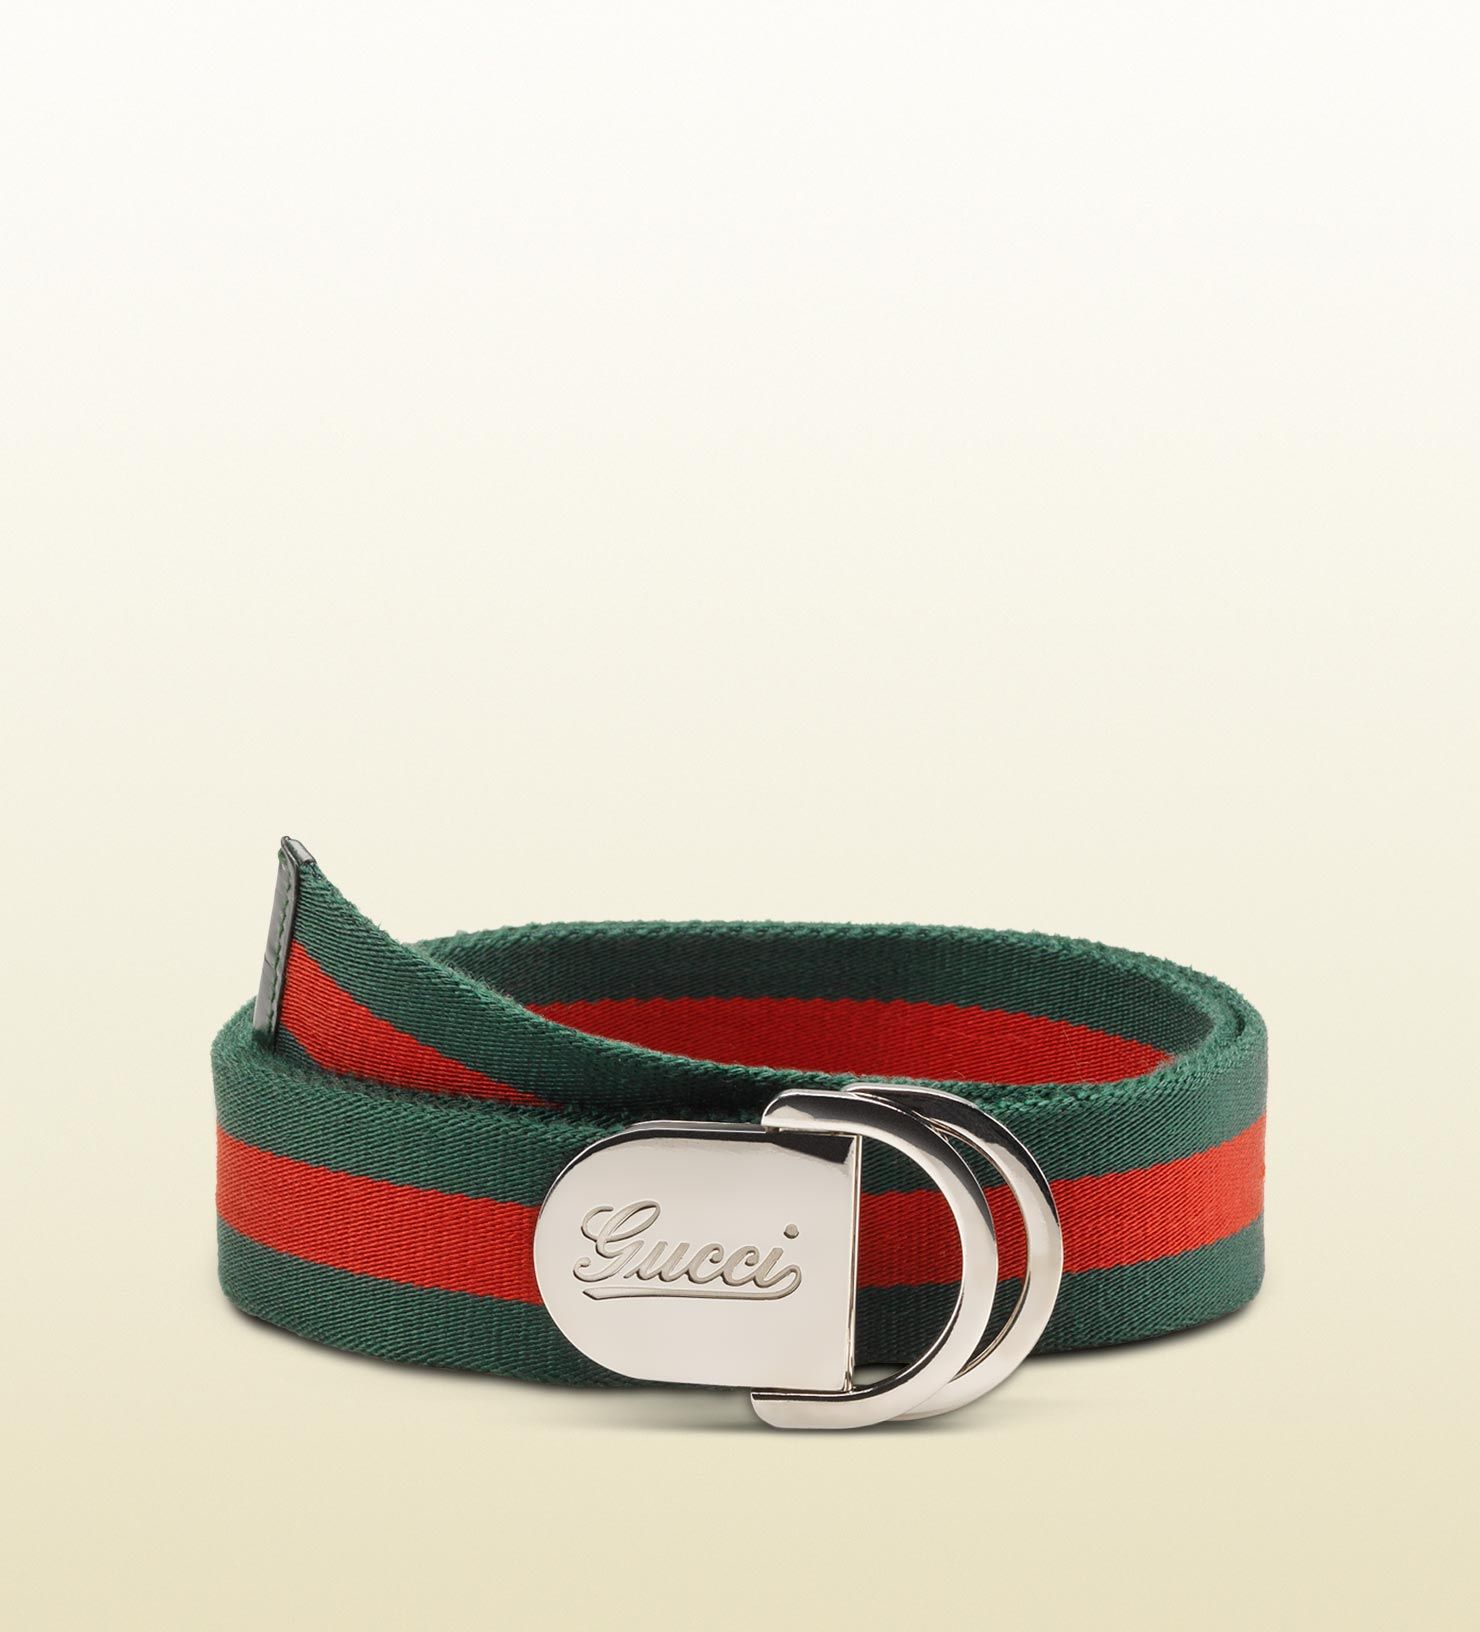 6b0cf6da8b3 belt with engraved gucci script logo and D ring buckle